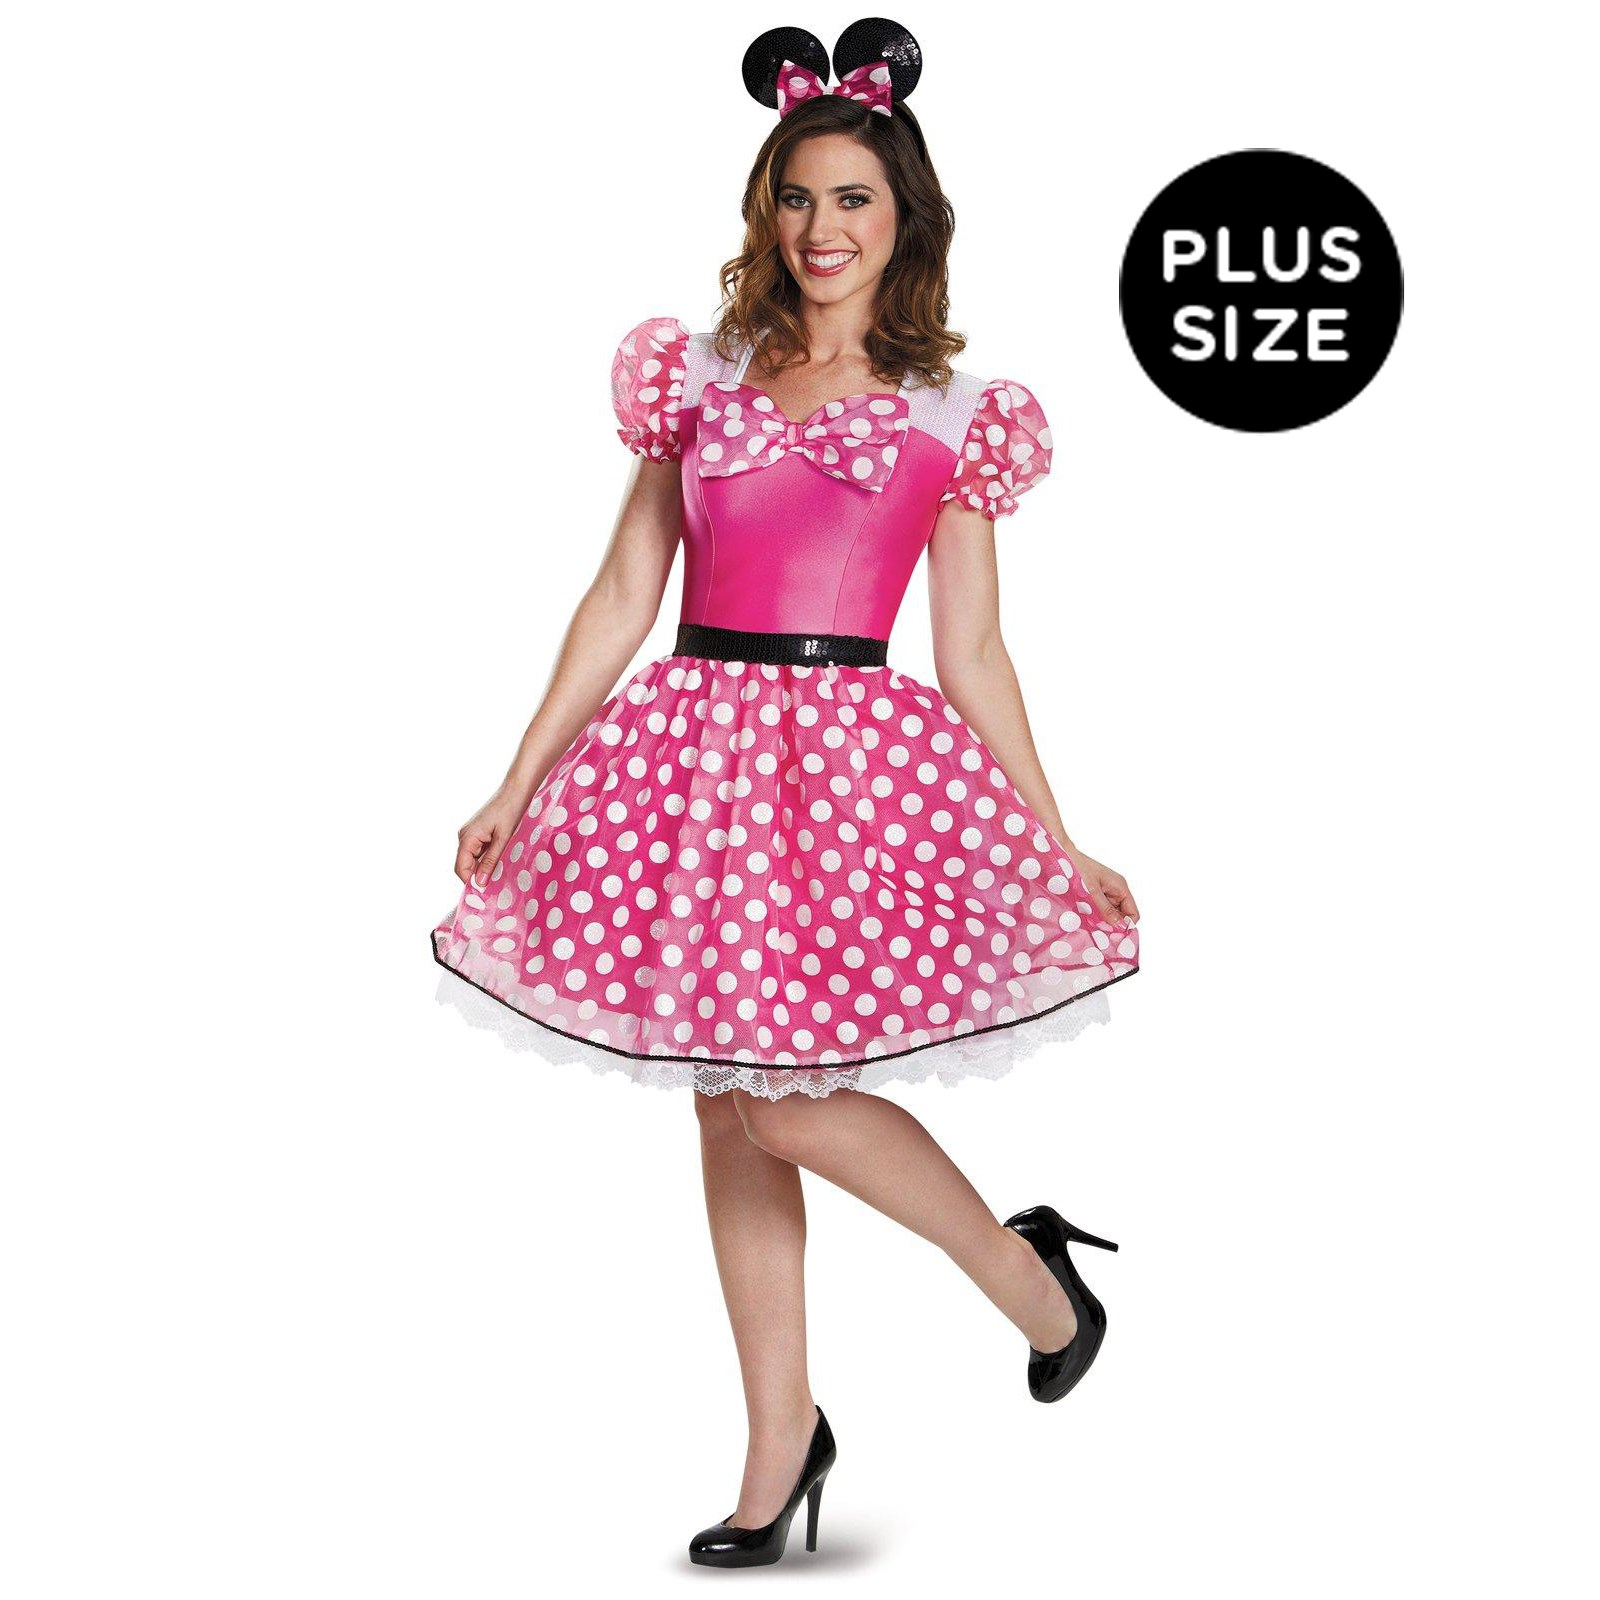 Pink Minnie Mouse Glam Plus Size Costume For Women | BuyCostumes.com